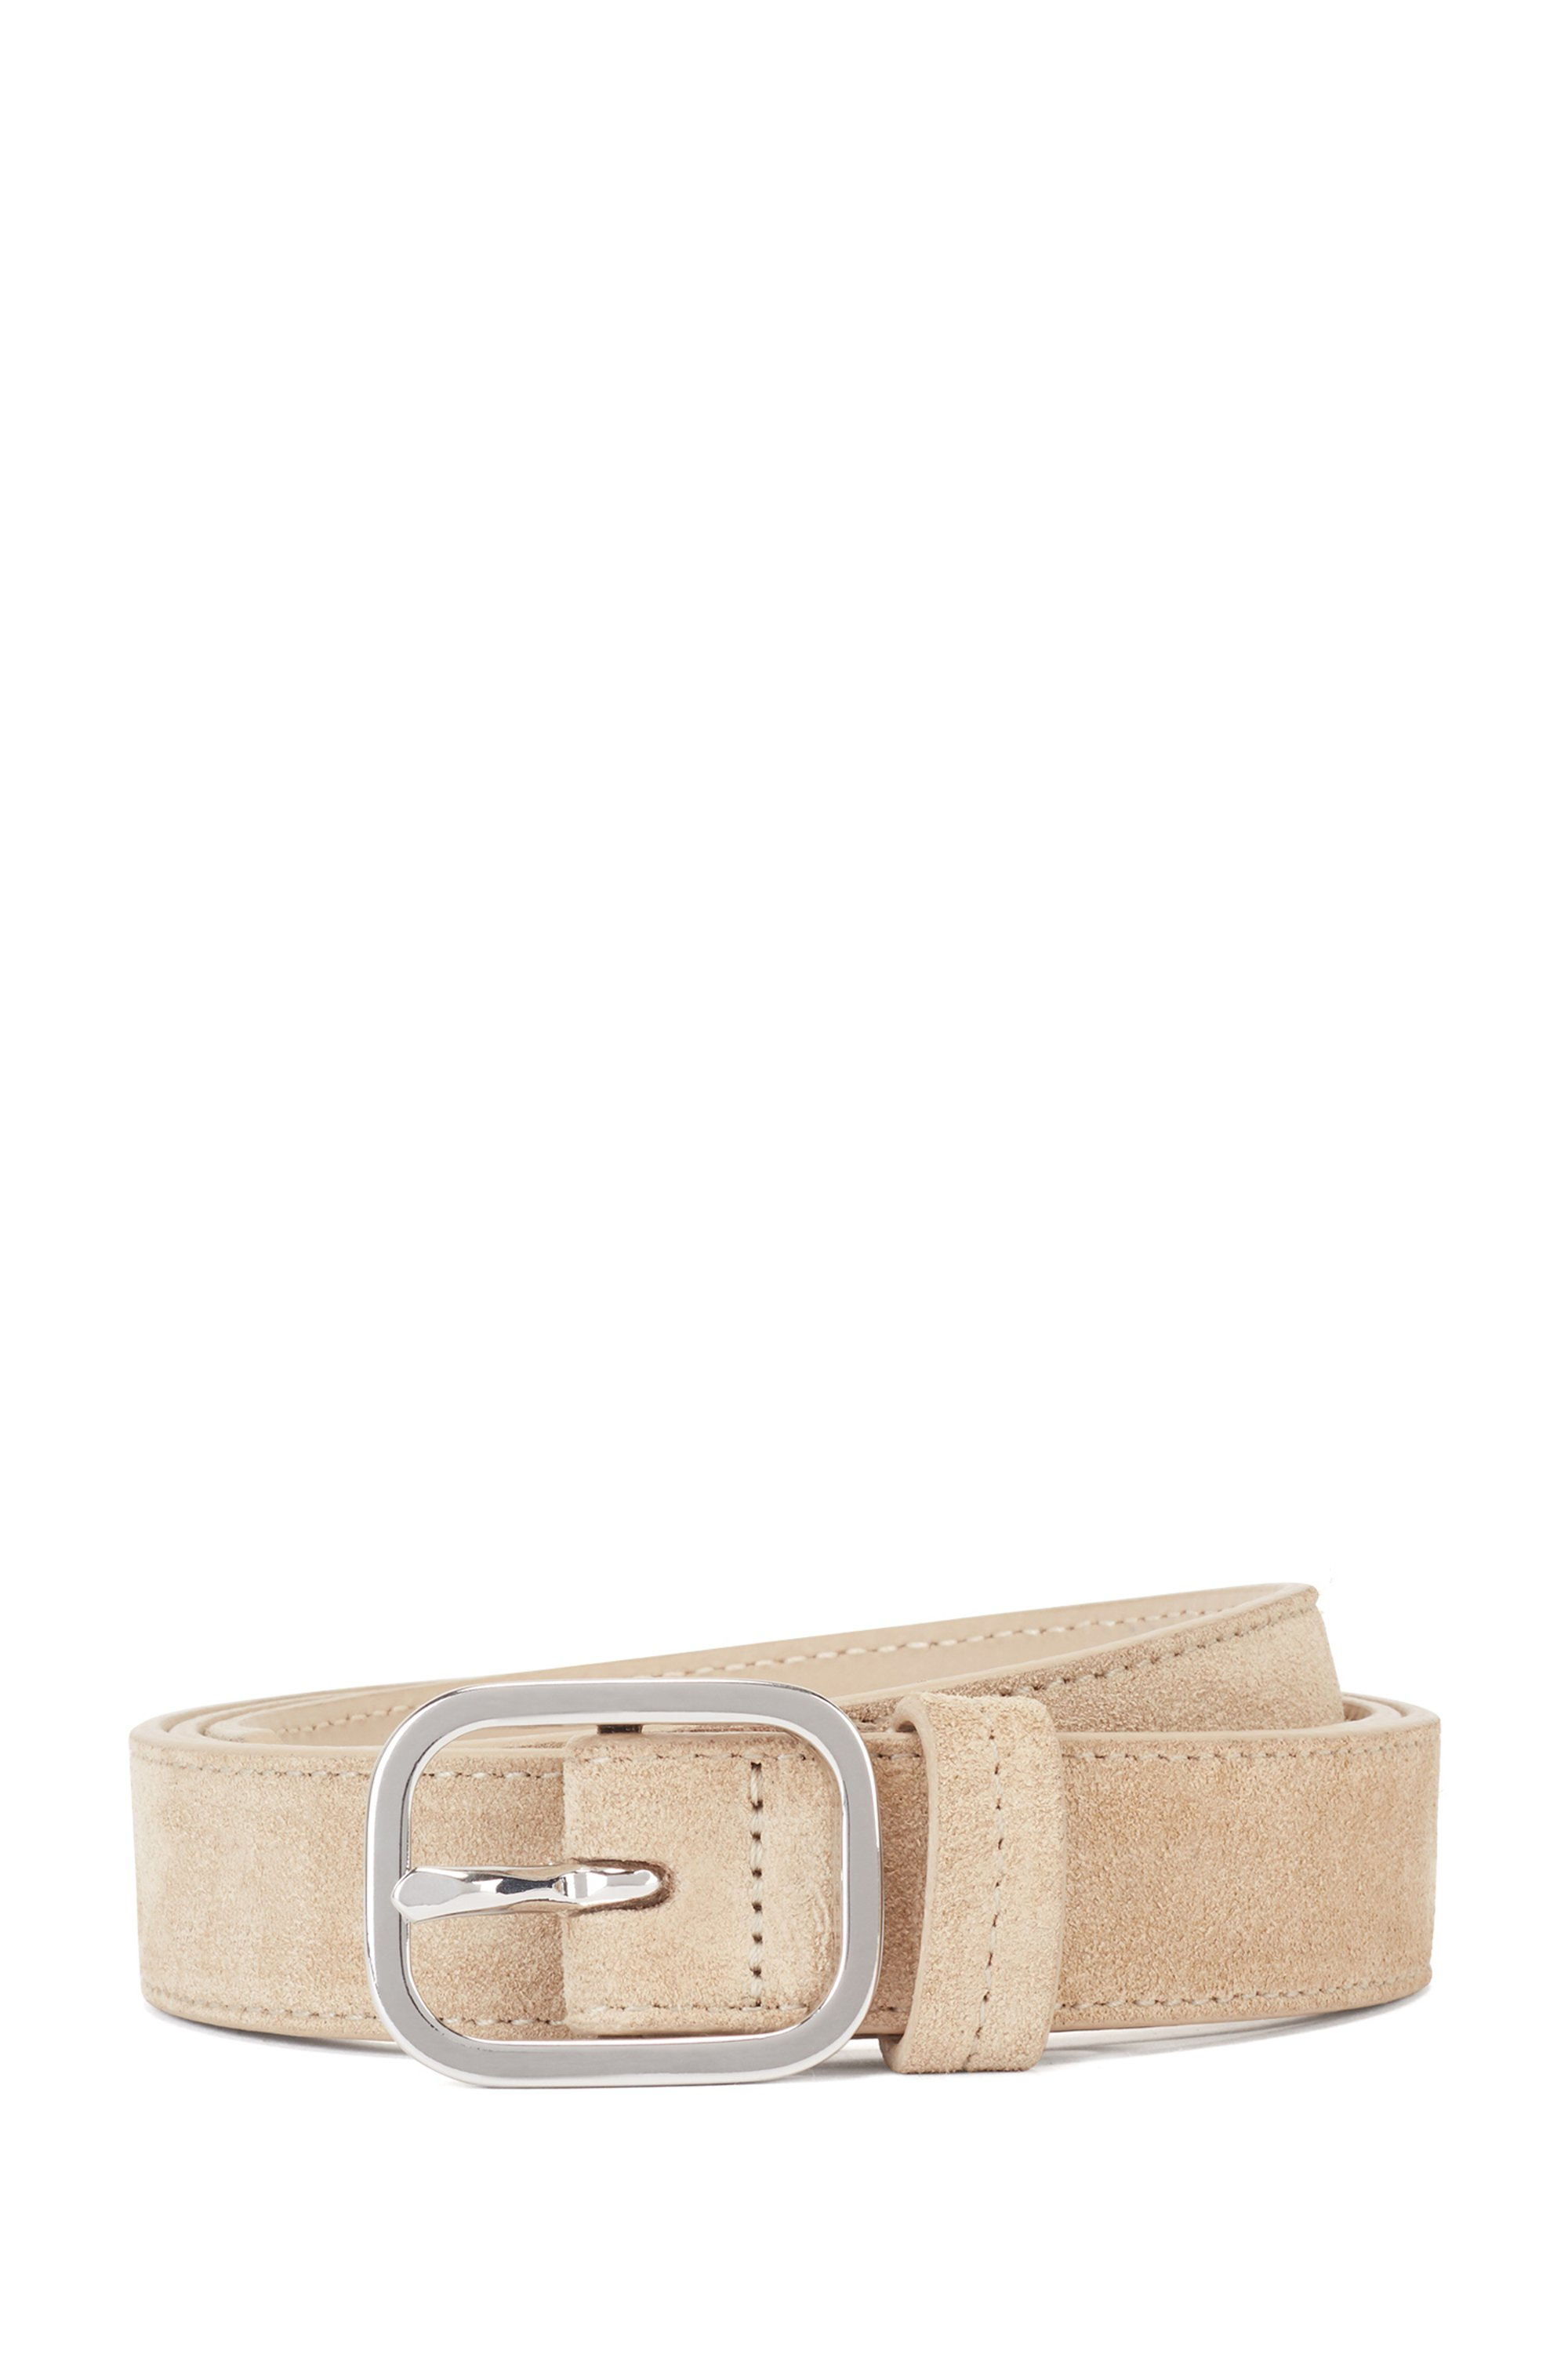 Italian-suede belt with rounded pin buckle, Beige